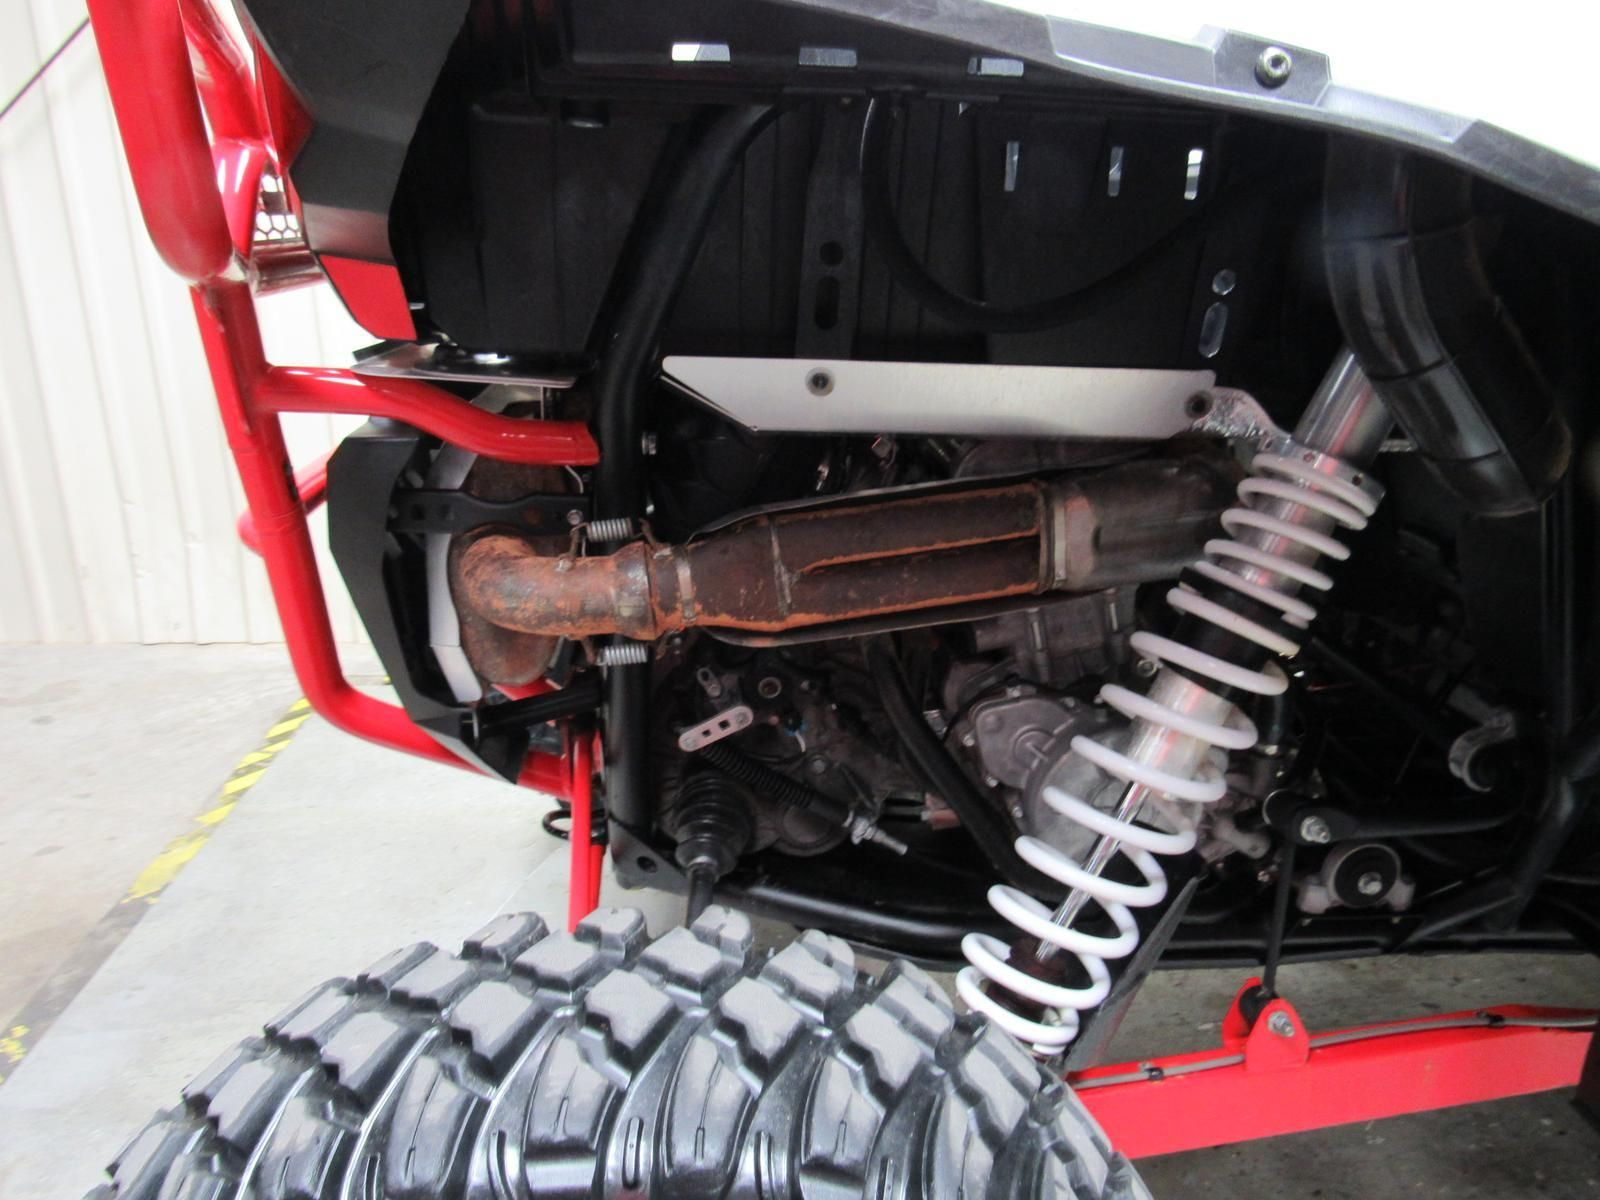 Used  Polaris Rzr Xp  Power Steering Atvs For Sale In